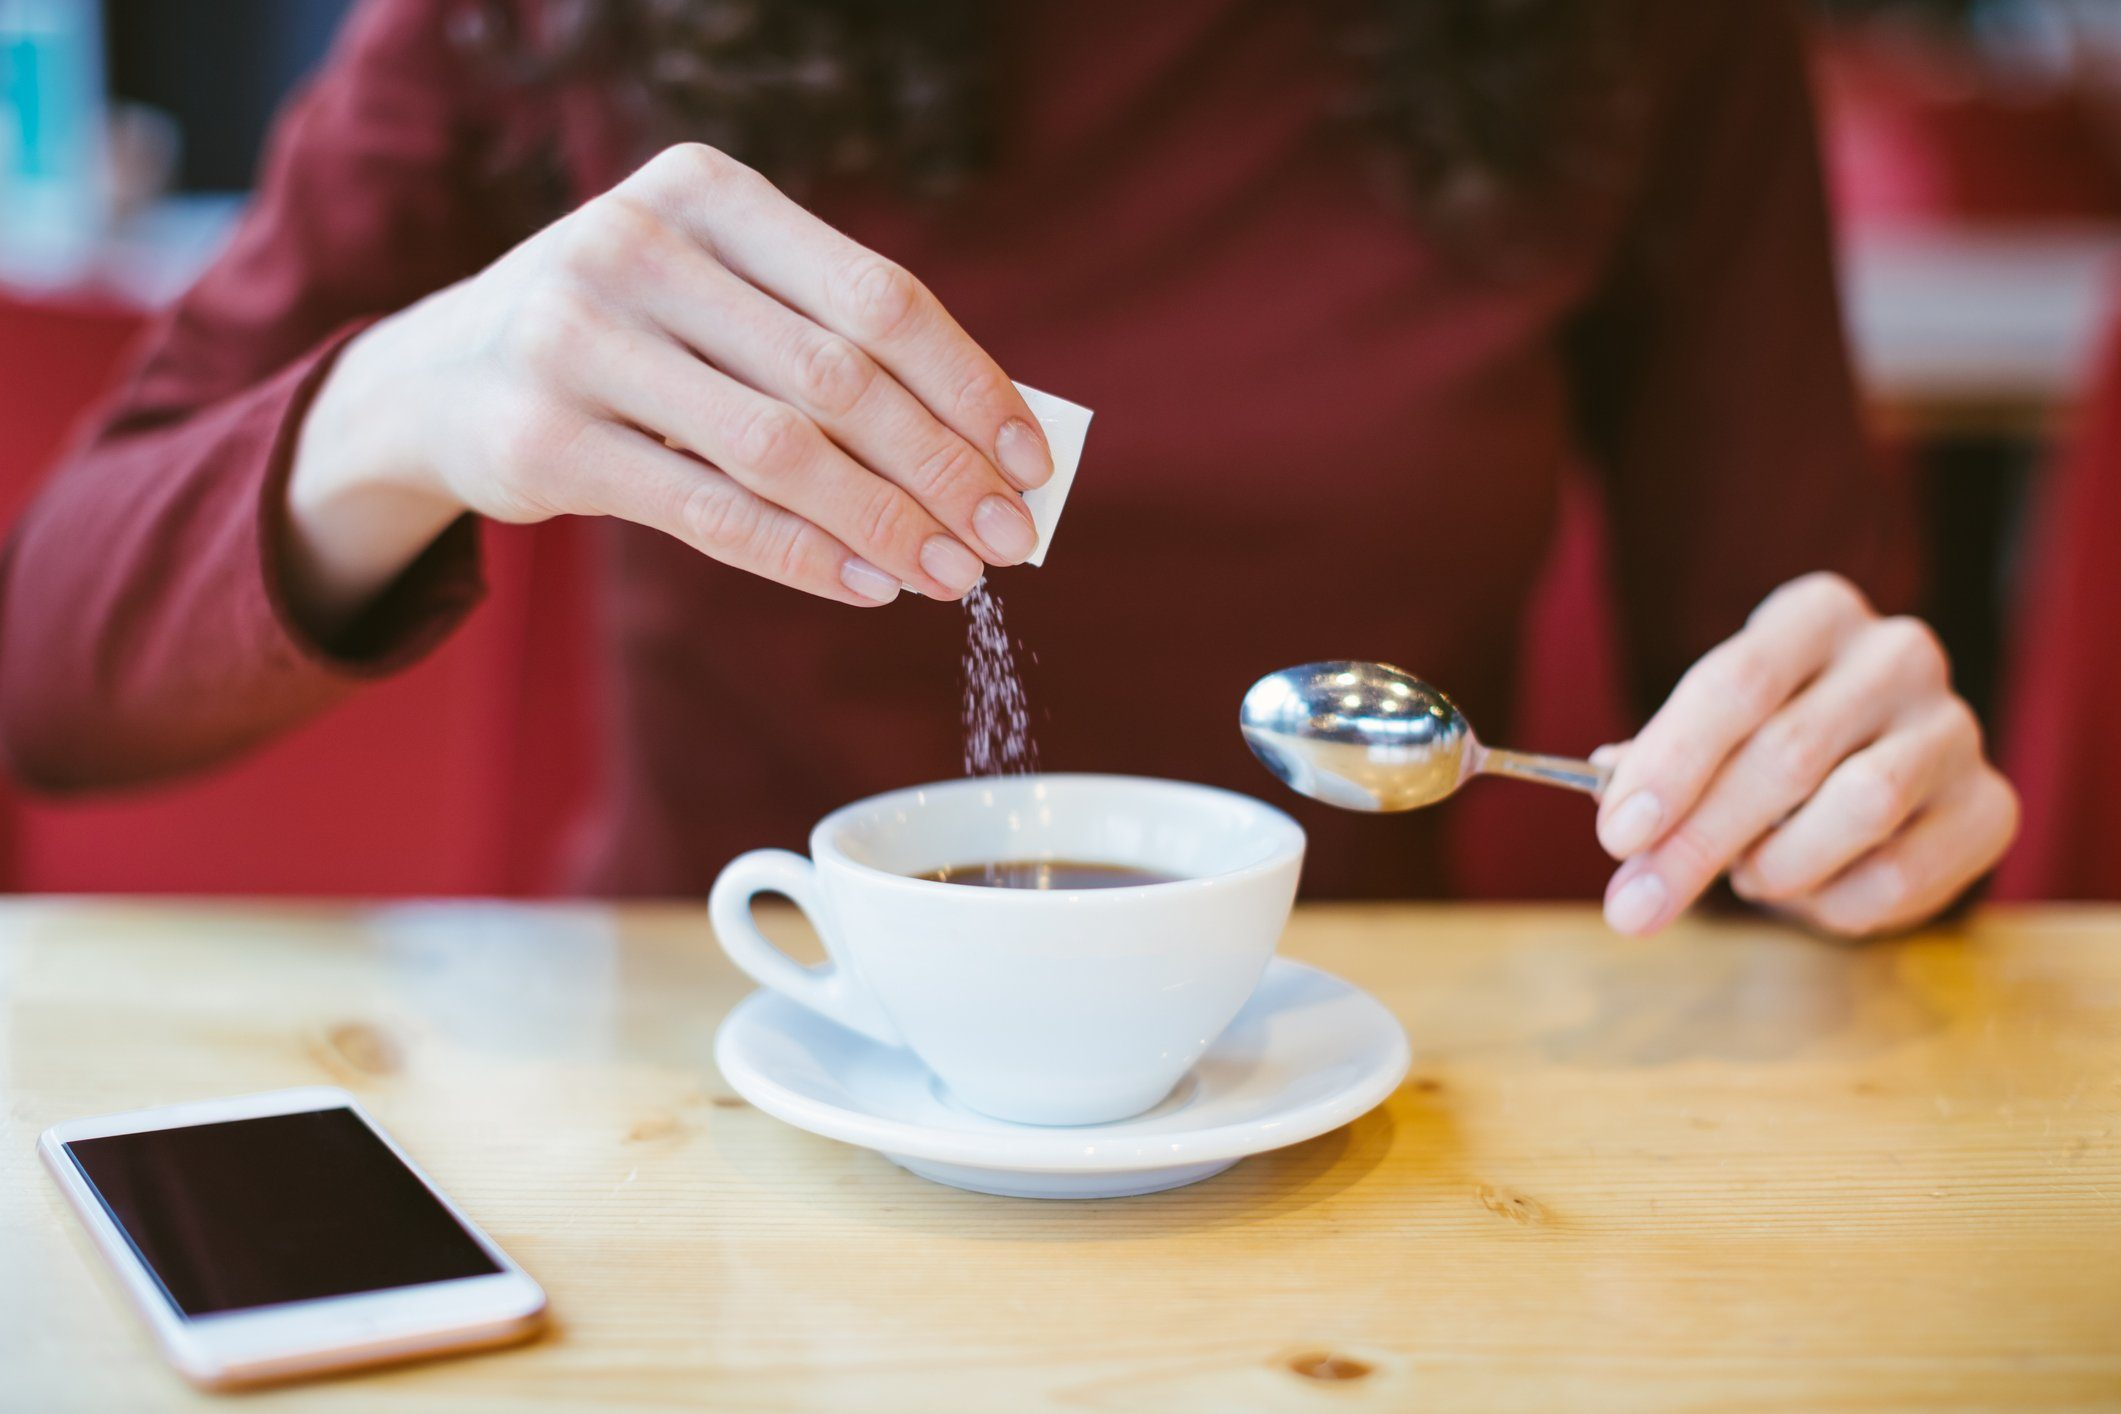 stevia bad for you | Woman's hands pouring sugar into black coffee - girl sitting at the table with espresso and smartphone - blood and glycemic index control for diabetes -excess of white sugar in food concept